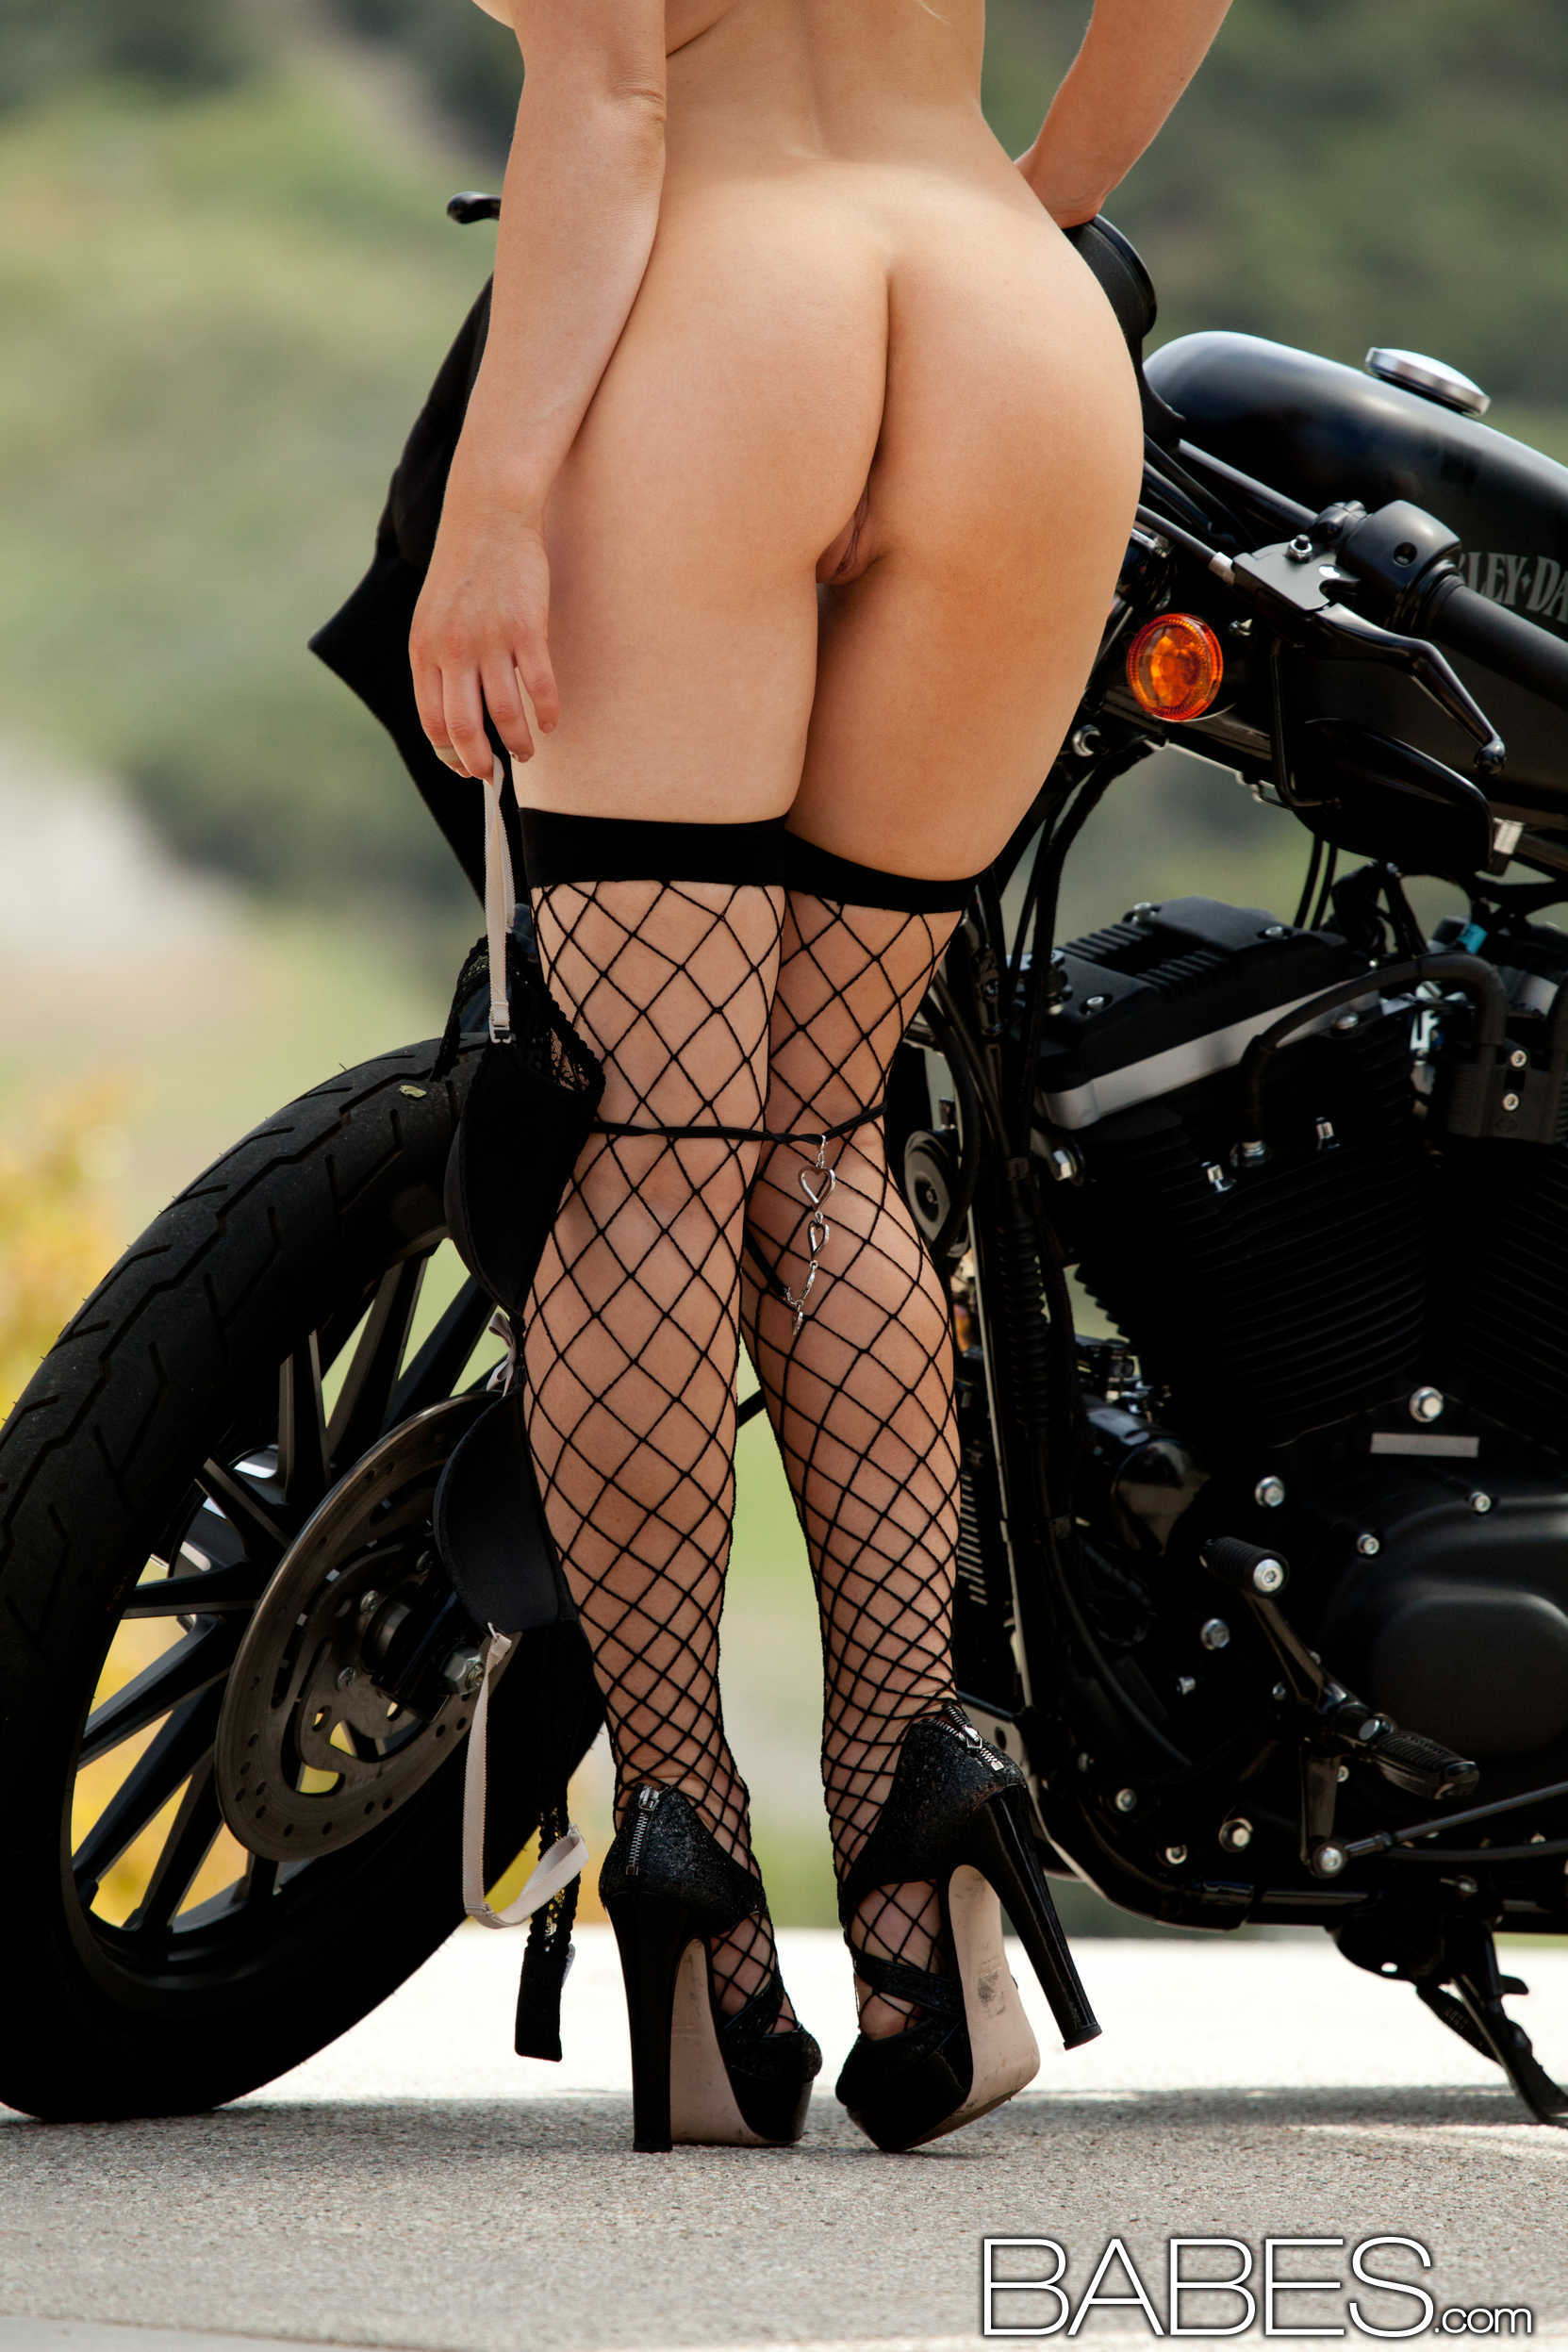 kayden kross bad biker girl with a perfect ass 12 greatnass.com_